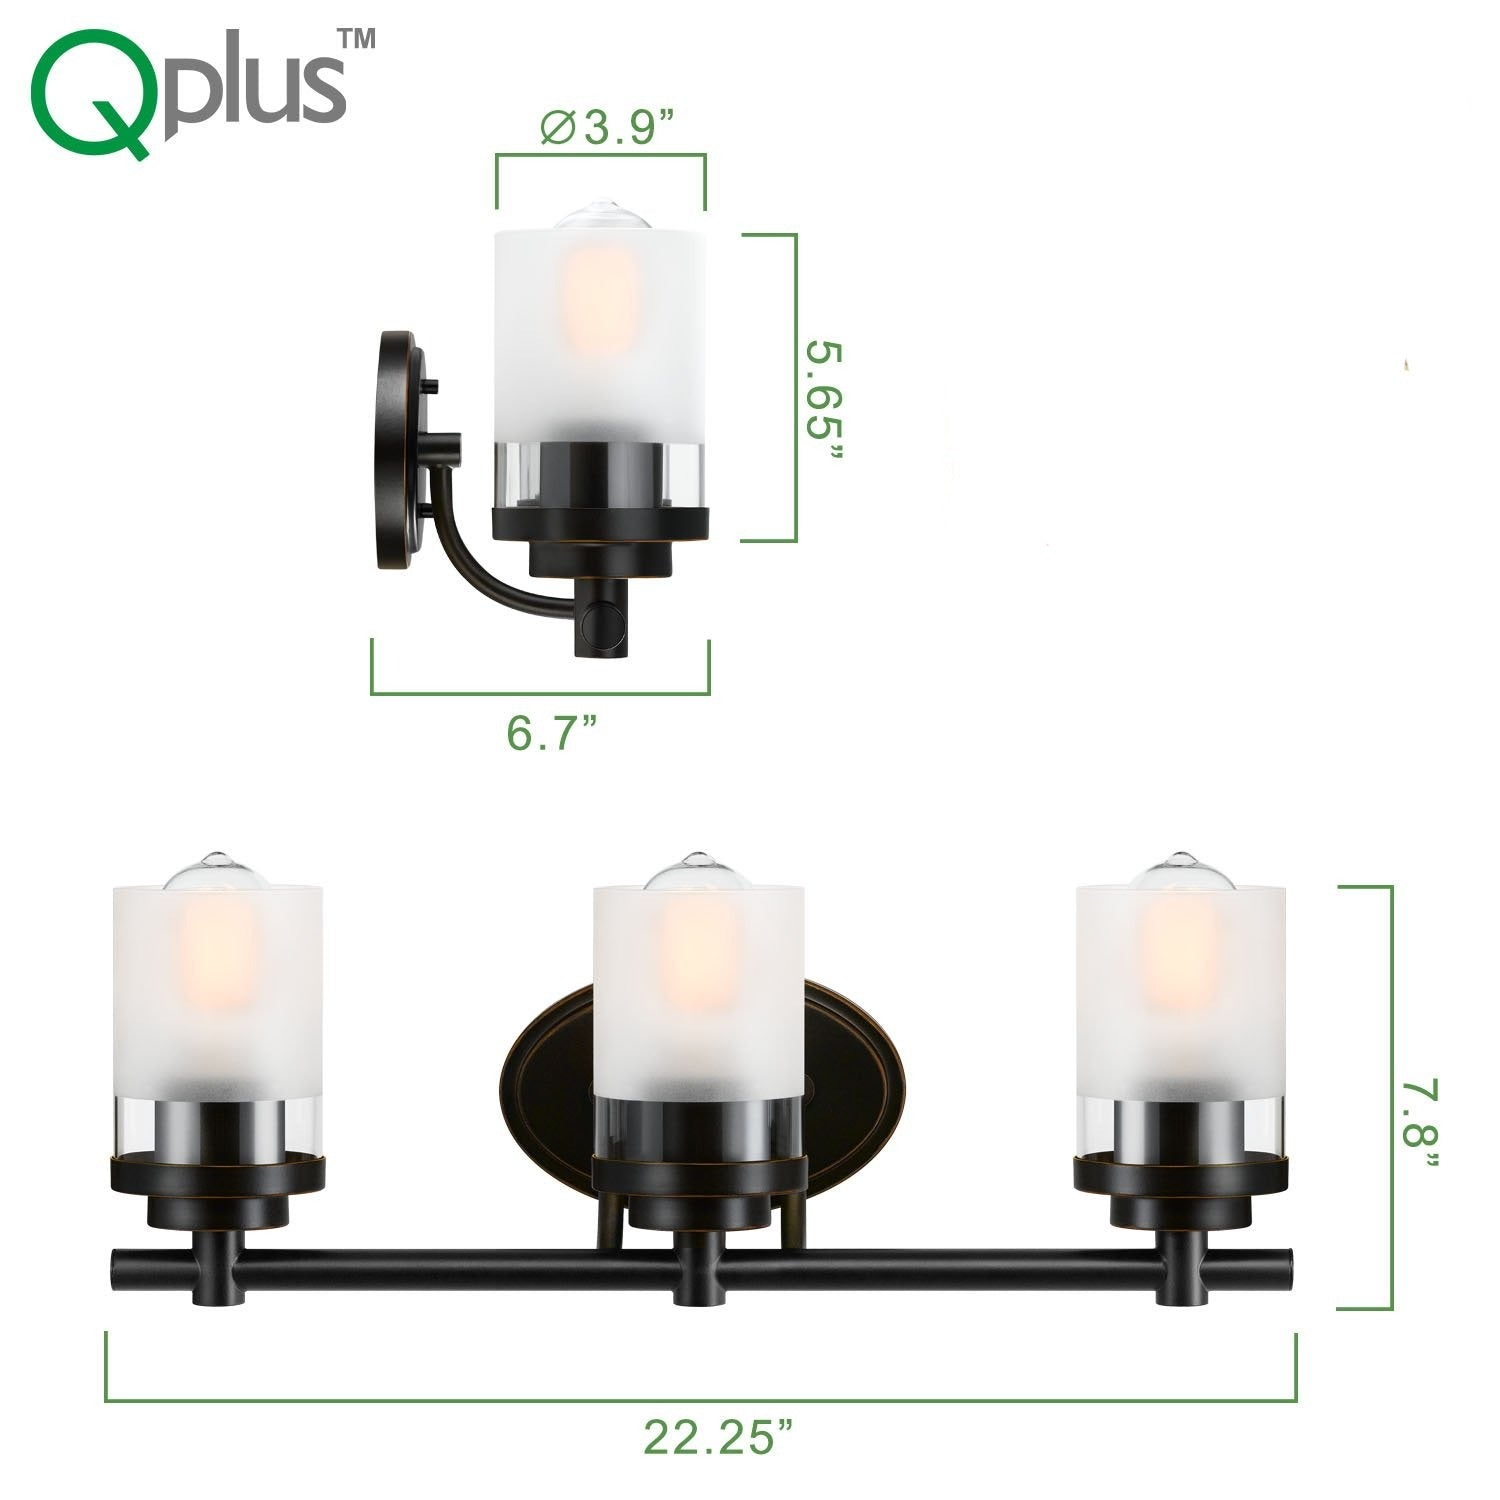 QPlus Bathroom Vanity Wall Light Fixture, 3 Lights with E26 Base & Clear, Frosted Glass shades (Sconces) - Bronze Finish